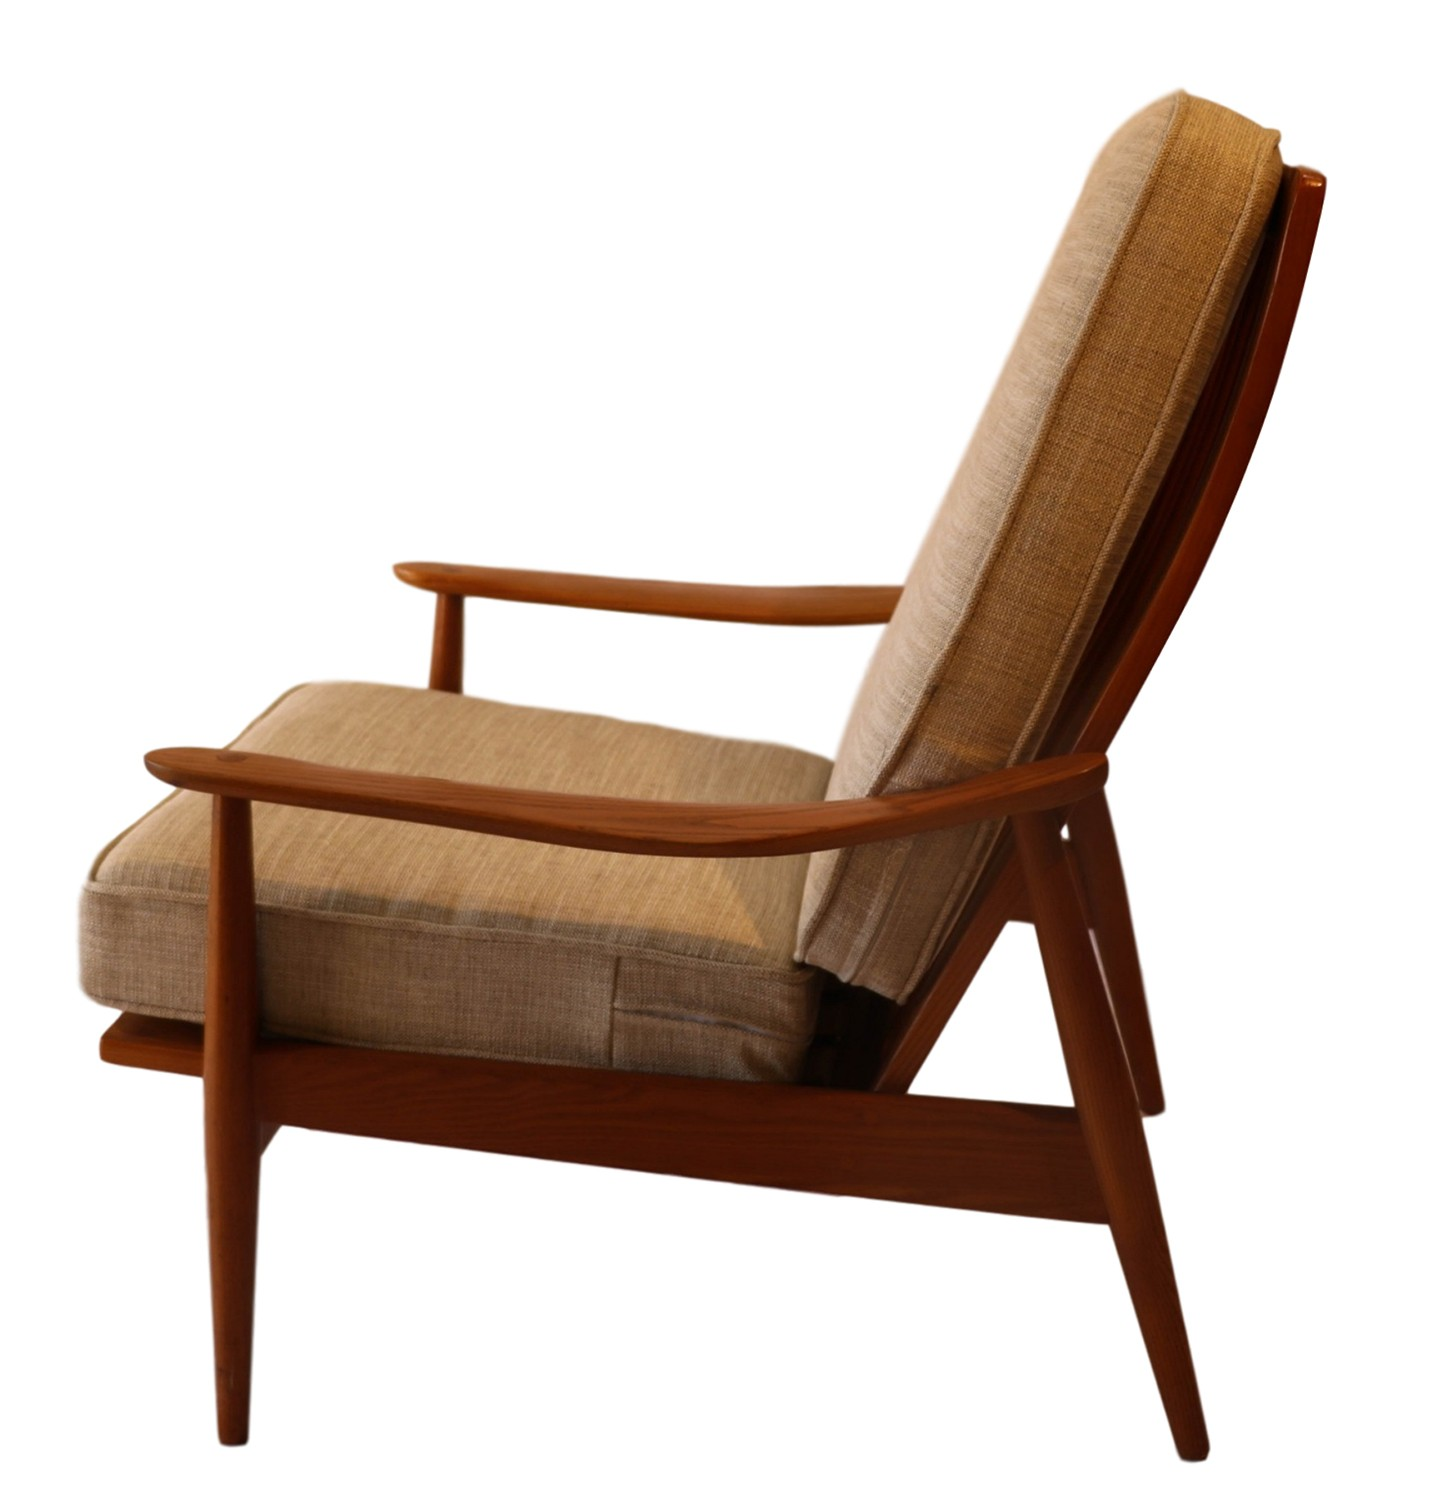 Mid Century Modern Furniture Chair: Mid Century Modern Teak High Back Lounge Chair